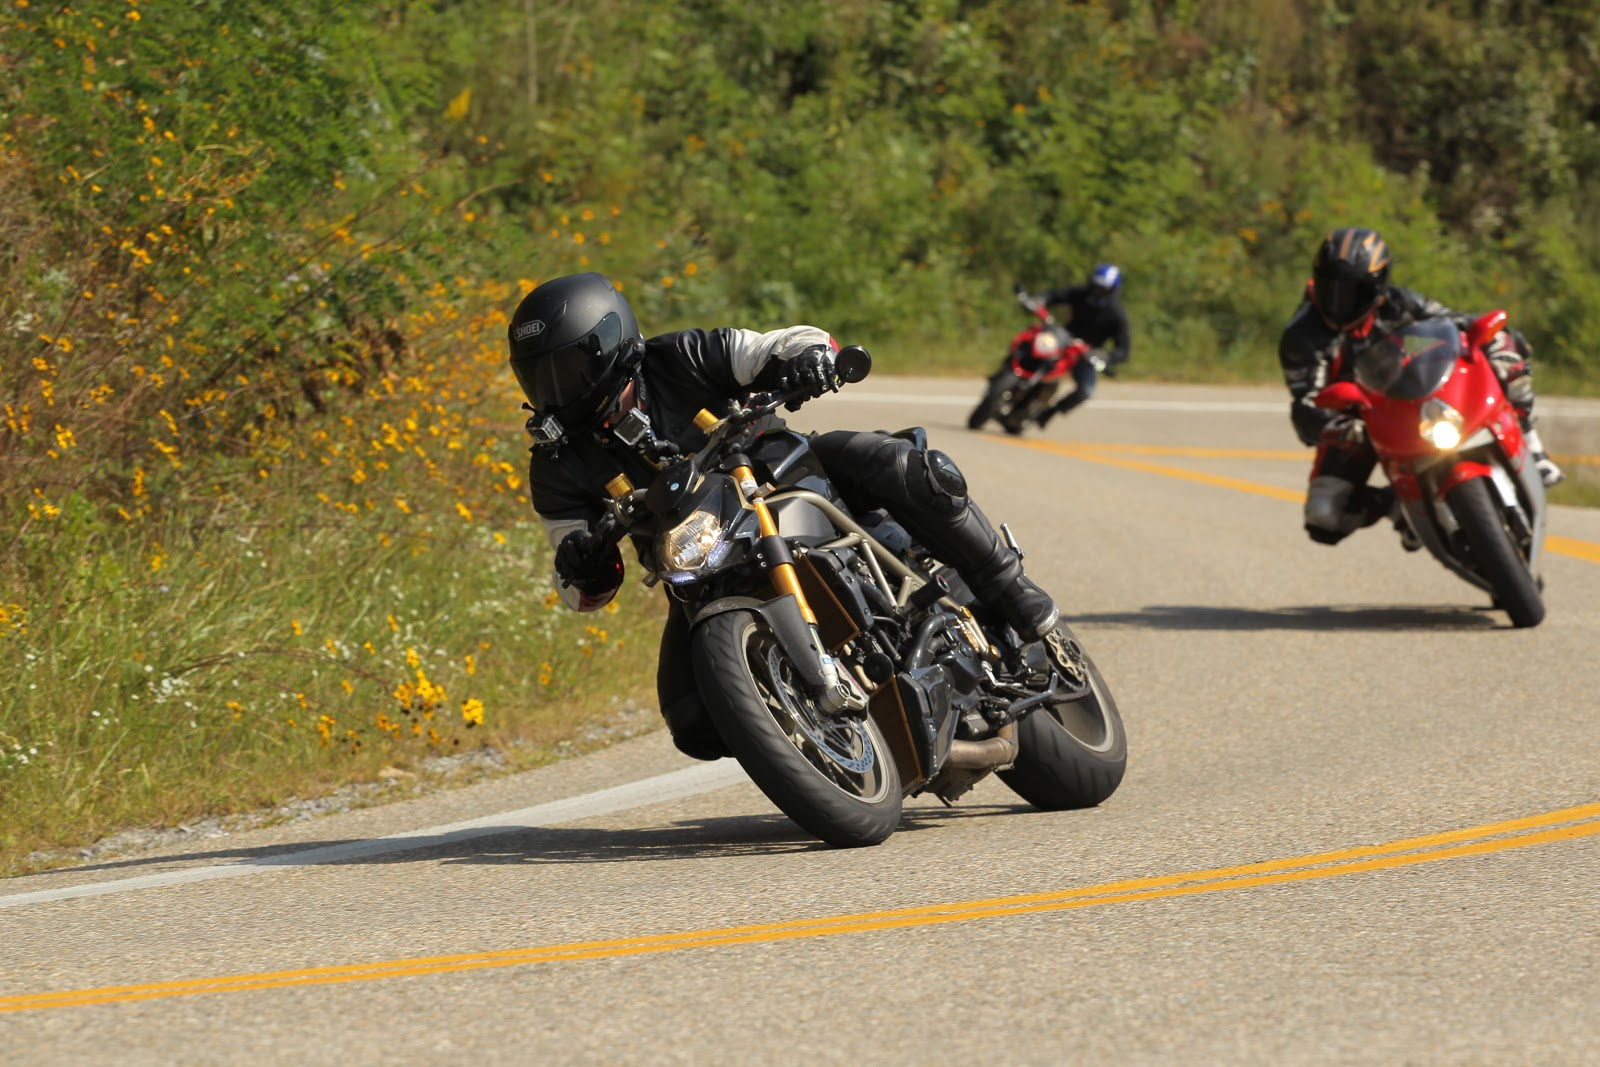 Tigh Loughhead rides Ducati and MV Agusta Motorcycles on the Tail of the Dragon North Carolina